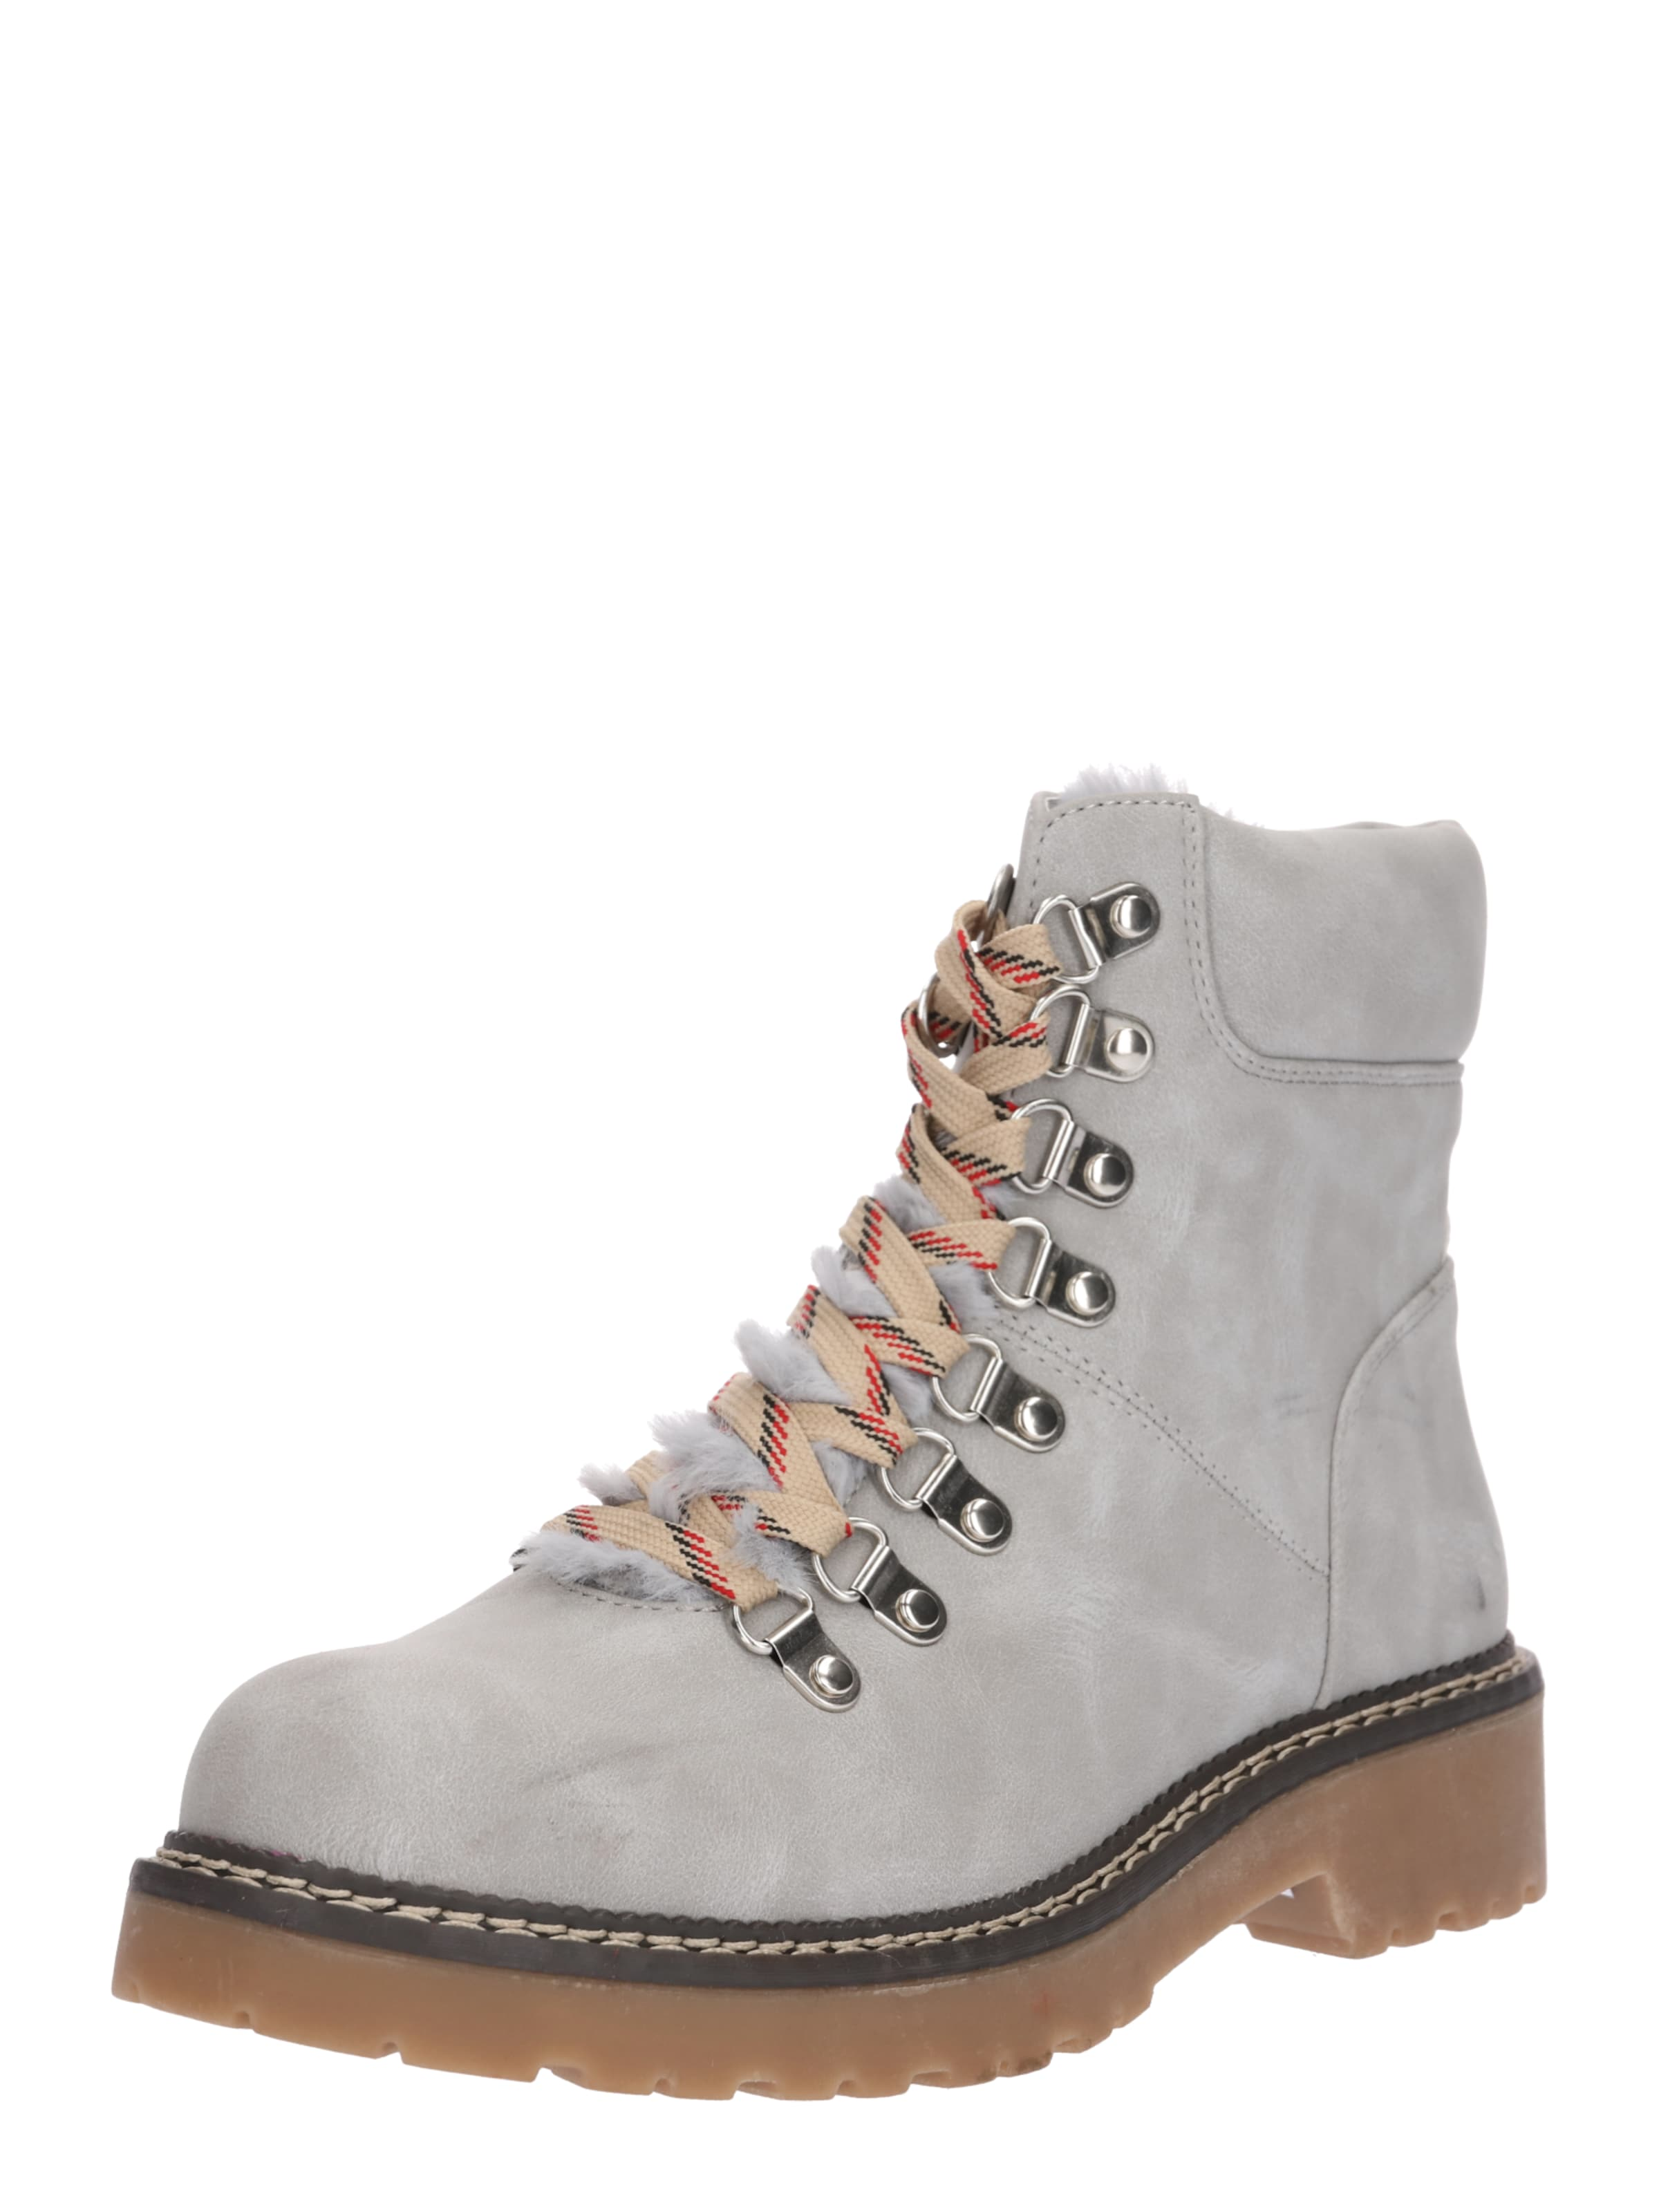 About You Bottines Lacets À En Gris 'luzi' oeCxdBr